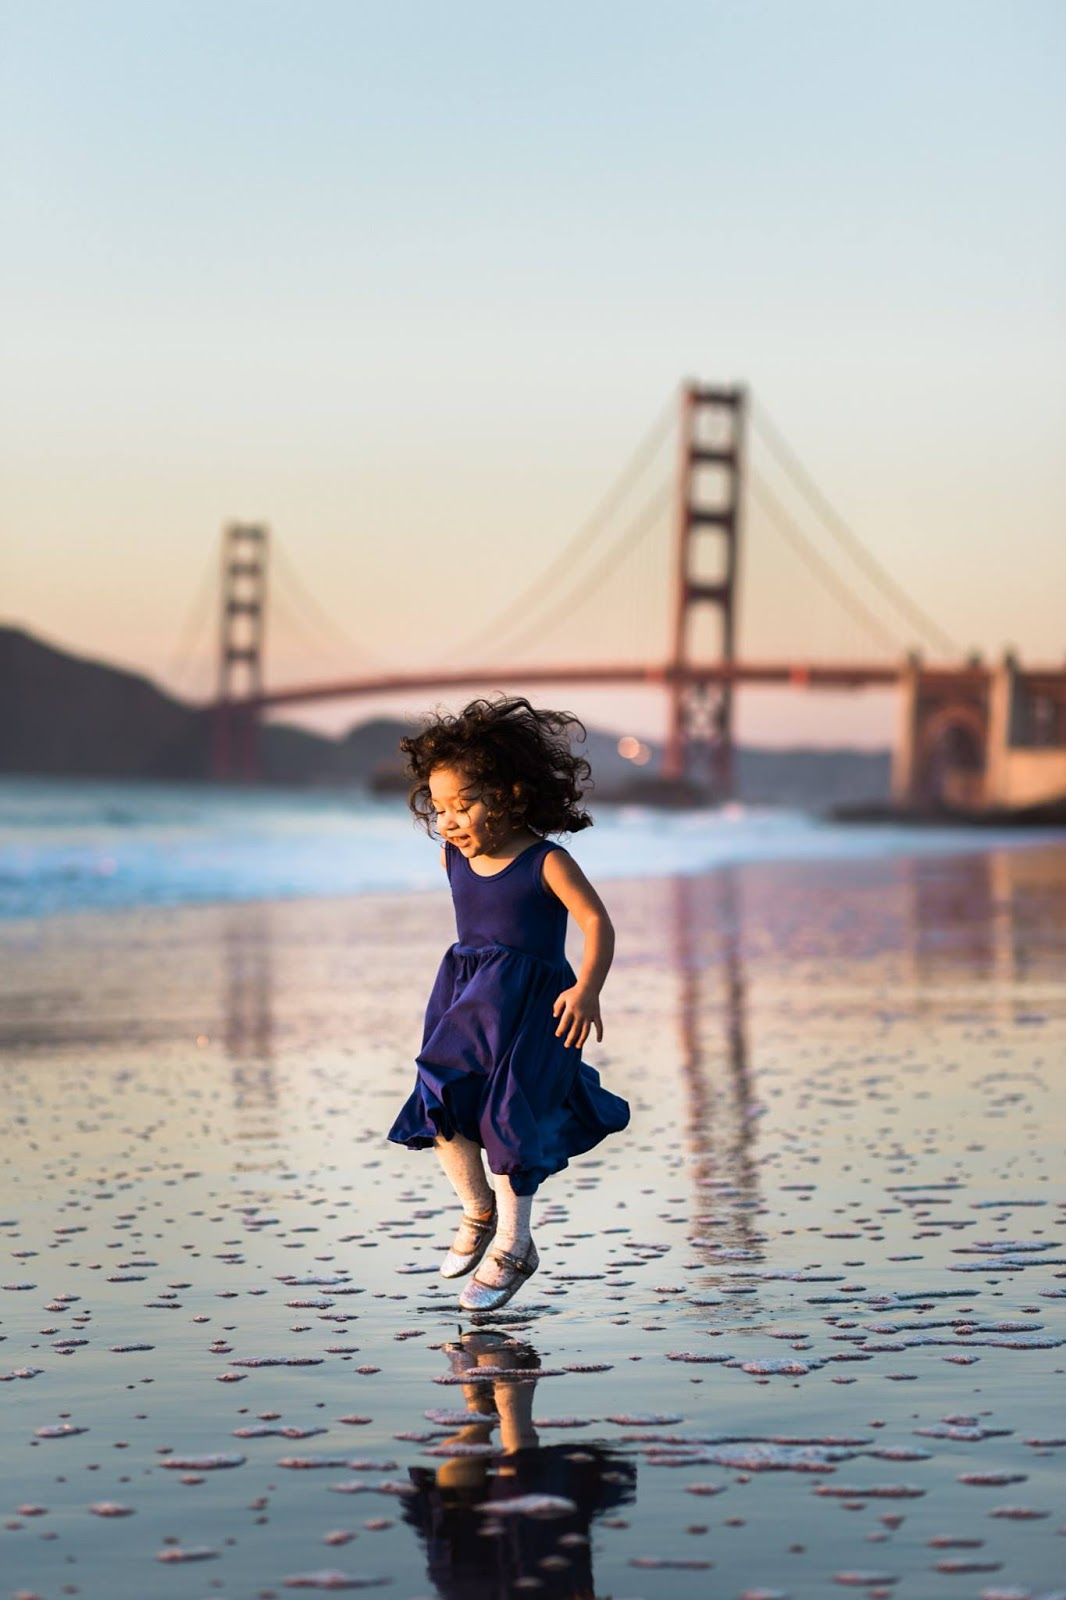 5 Must Take Photos of Kids at the Beach